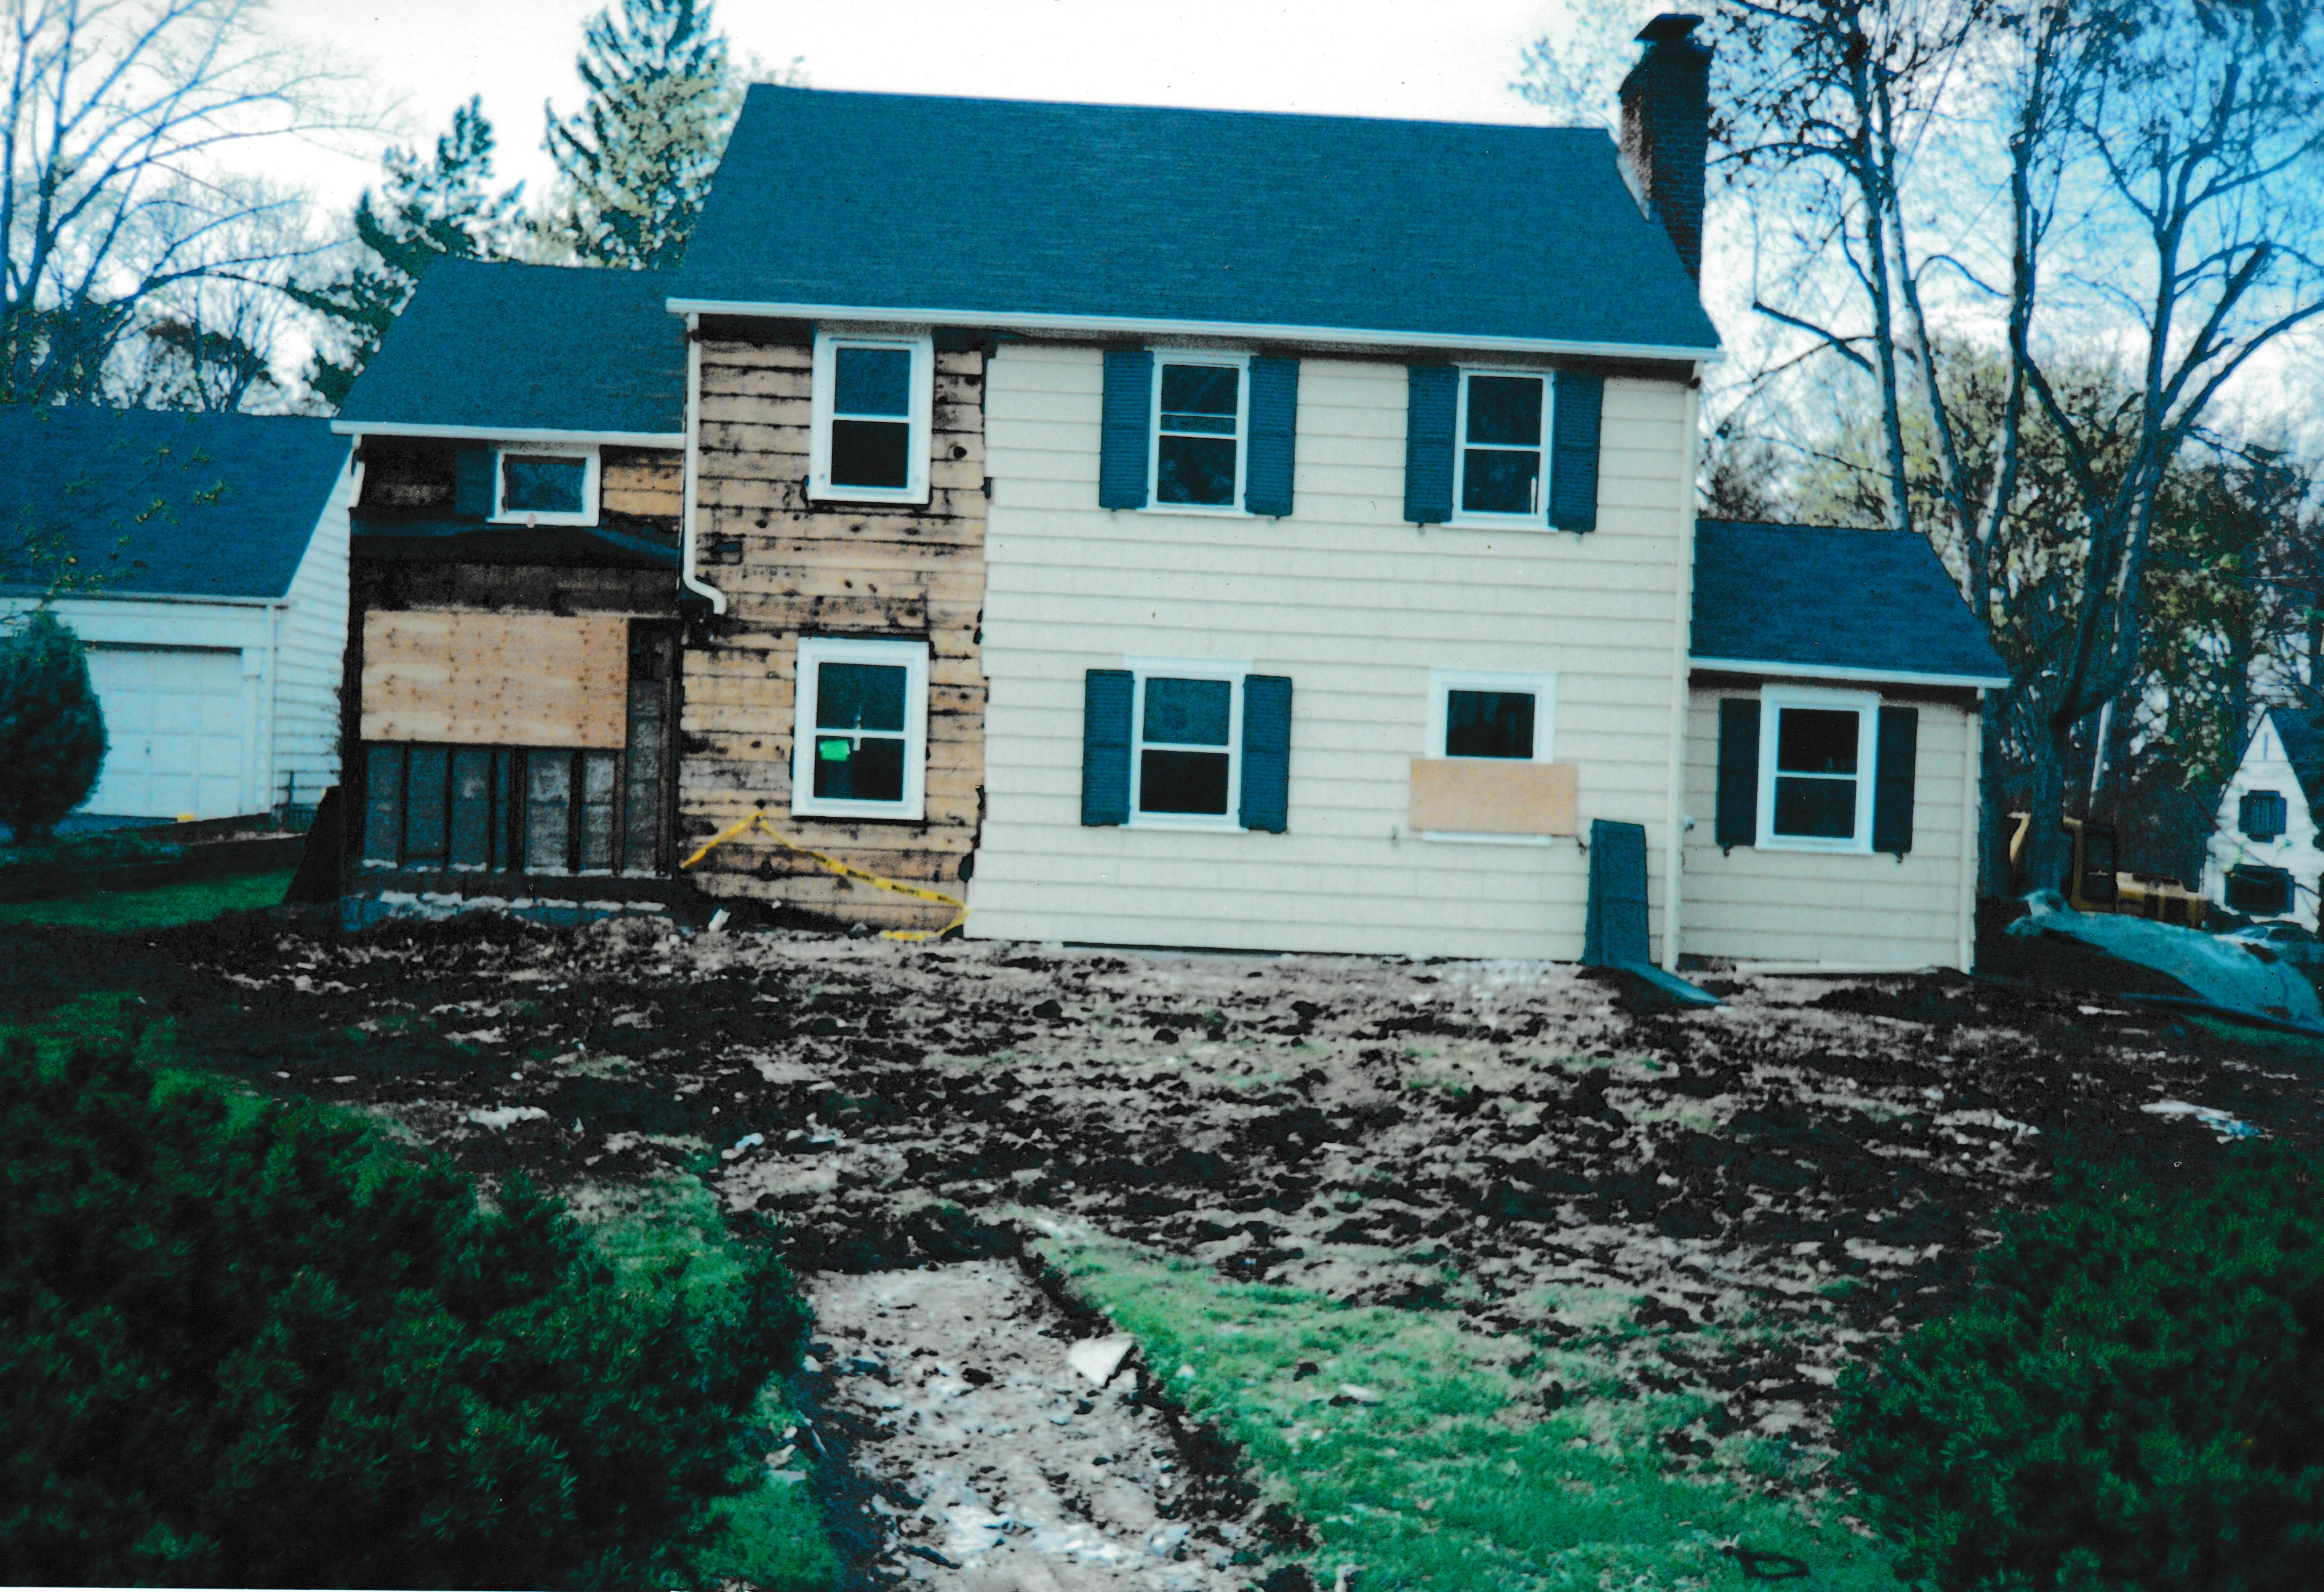 Partially constructed house with torn up lawn in the foreground